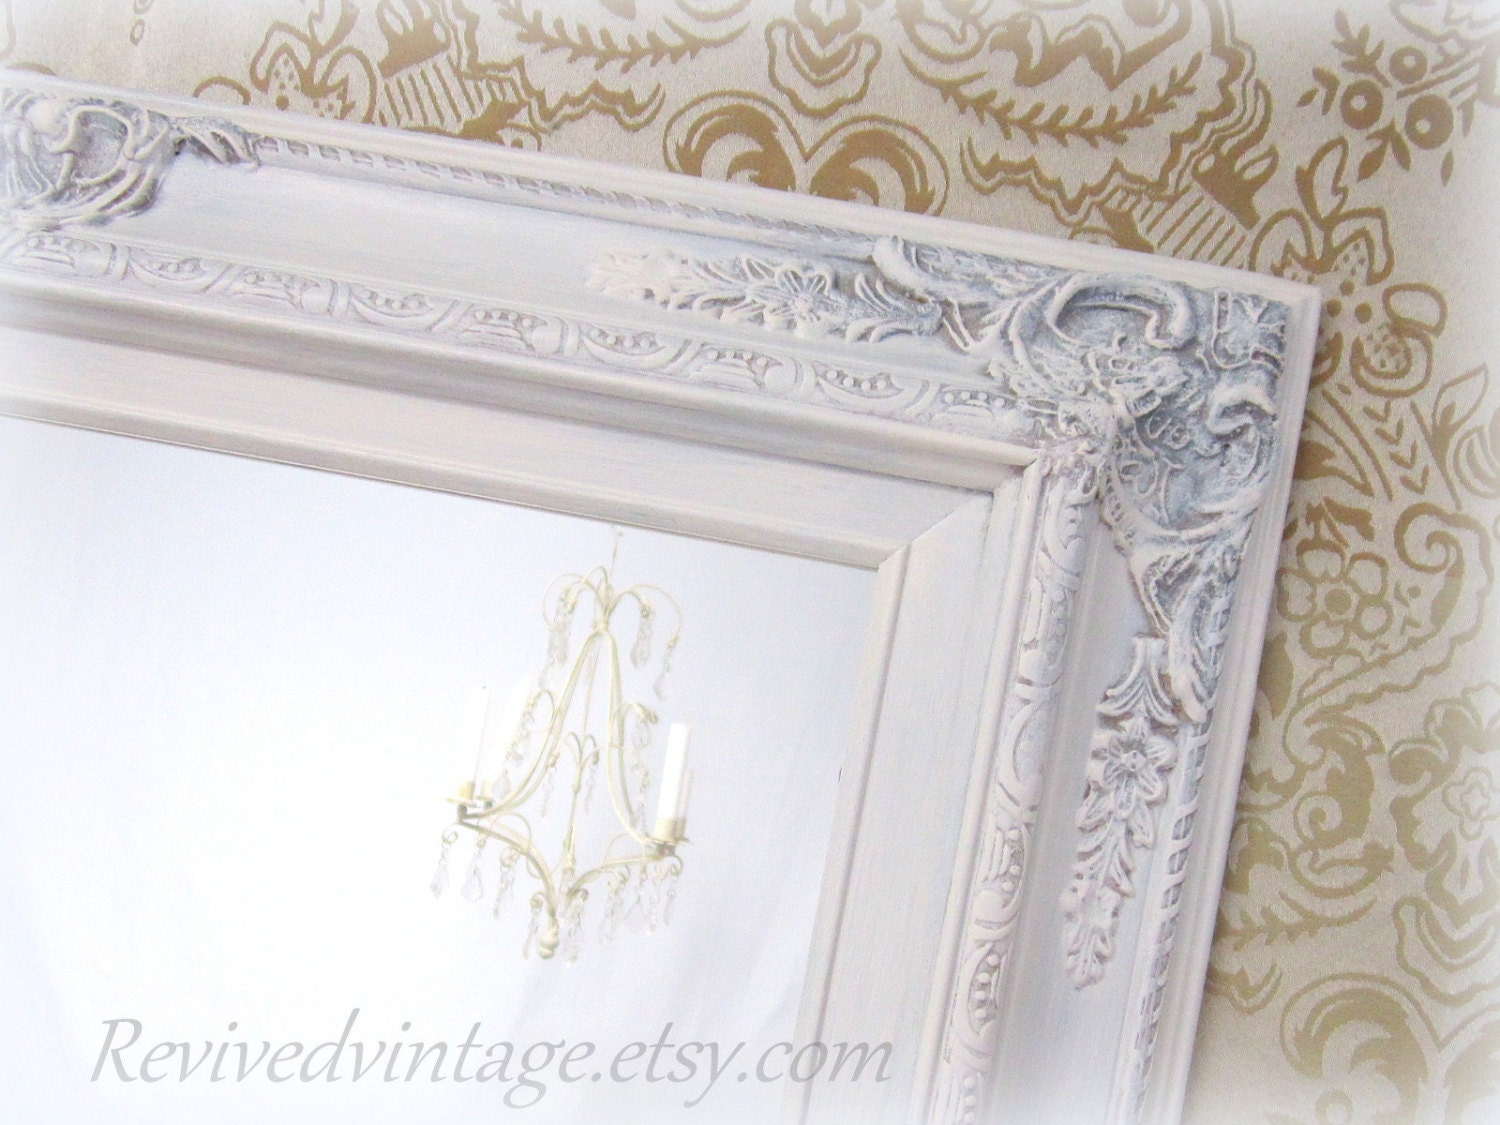 Shabby chic mirrors for sale baroque framed mirror for Mirrors for sale